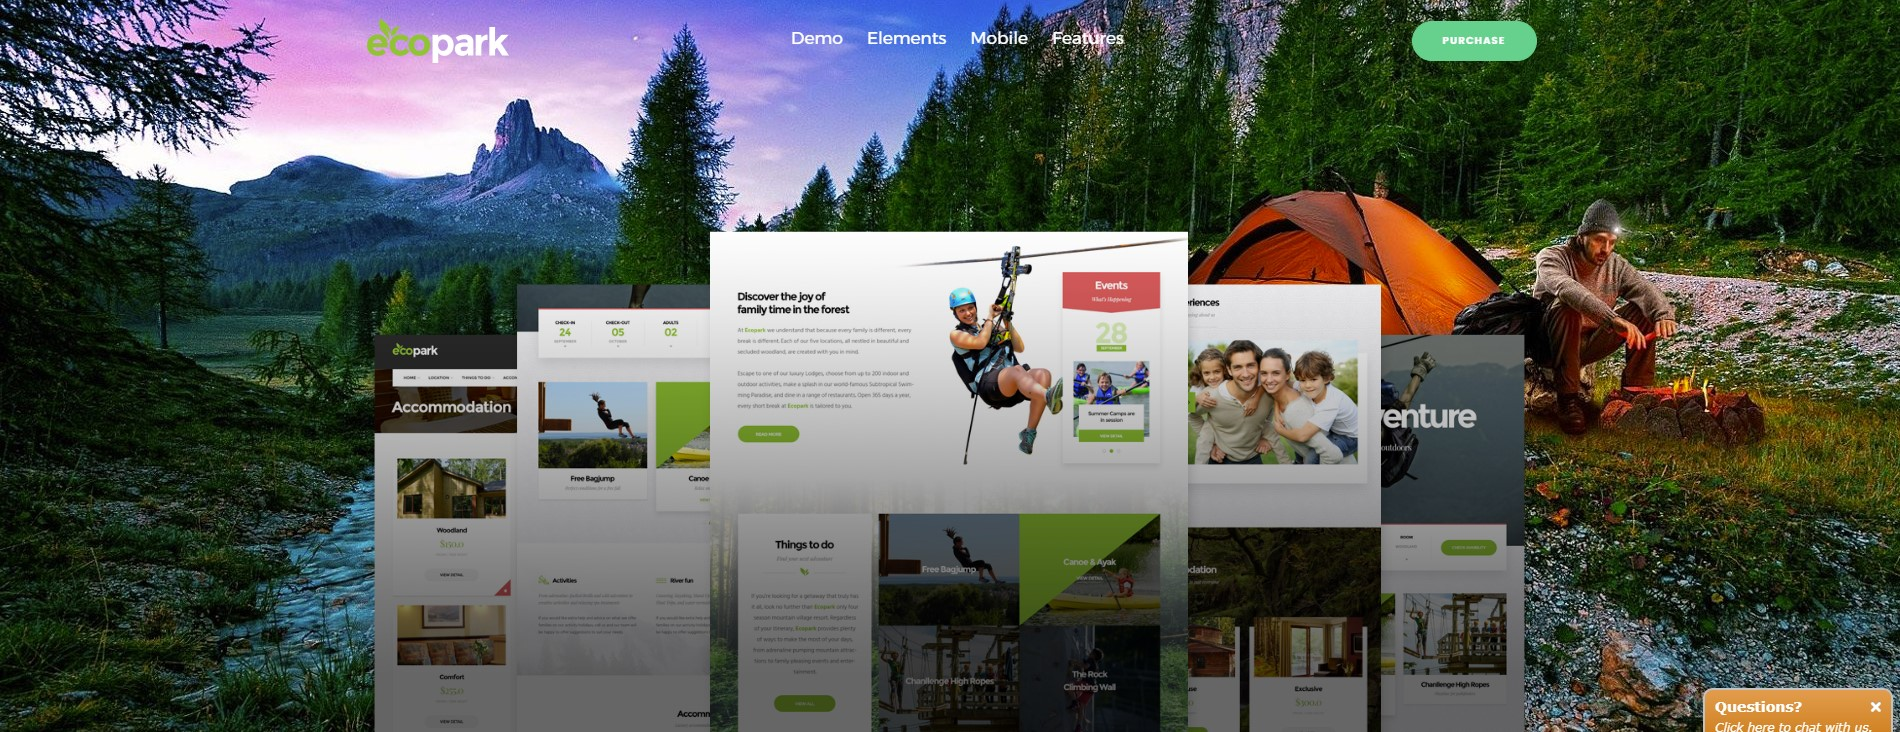 Ecopark – WordPress Theme for Tour, Vacation, Travel & Resort